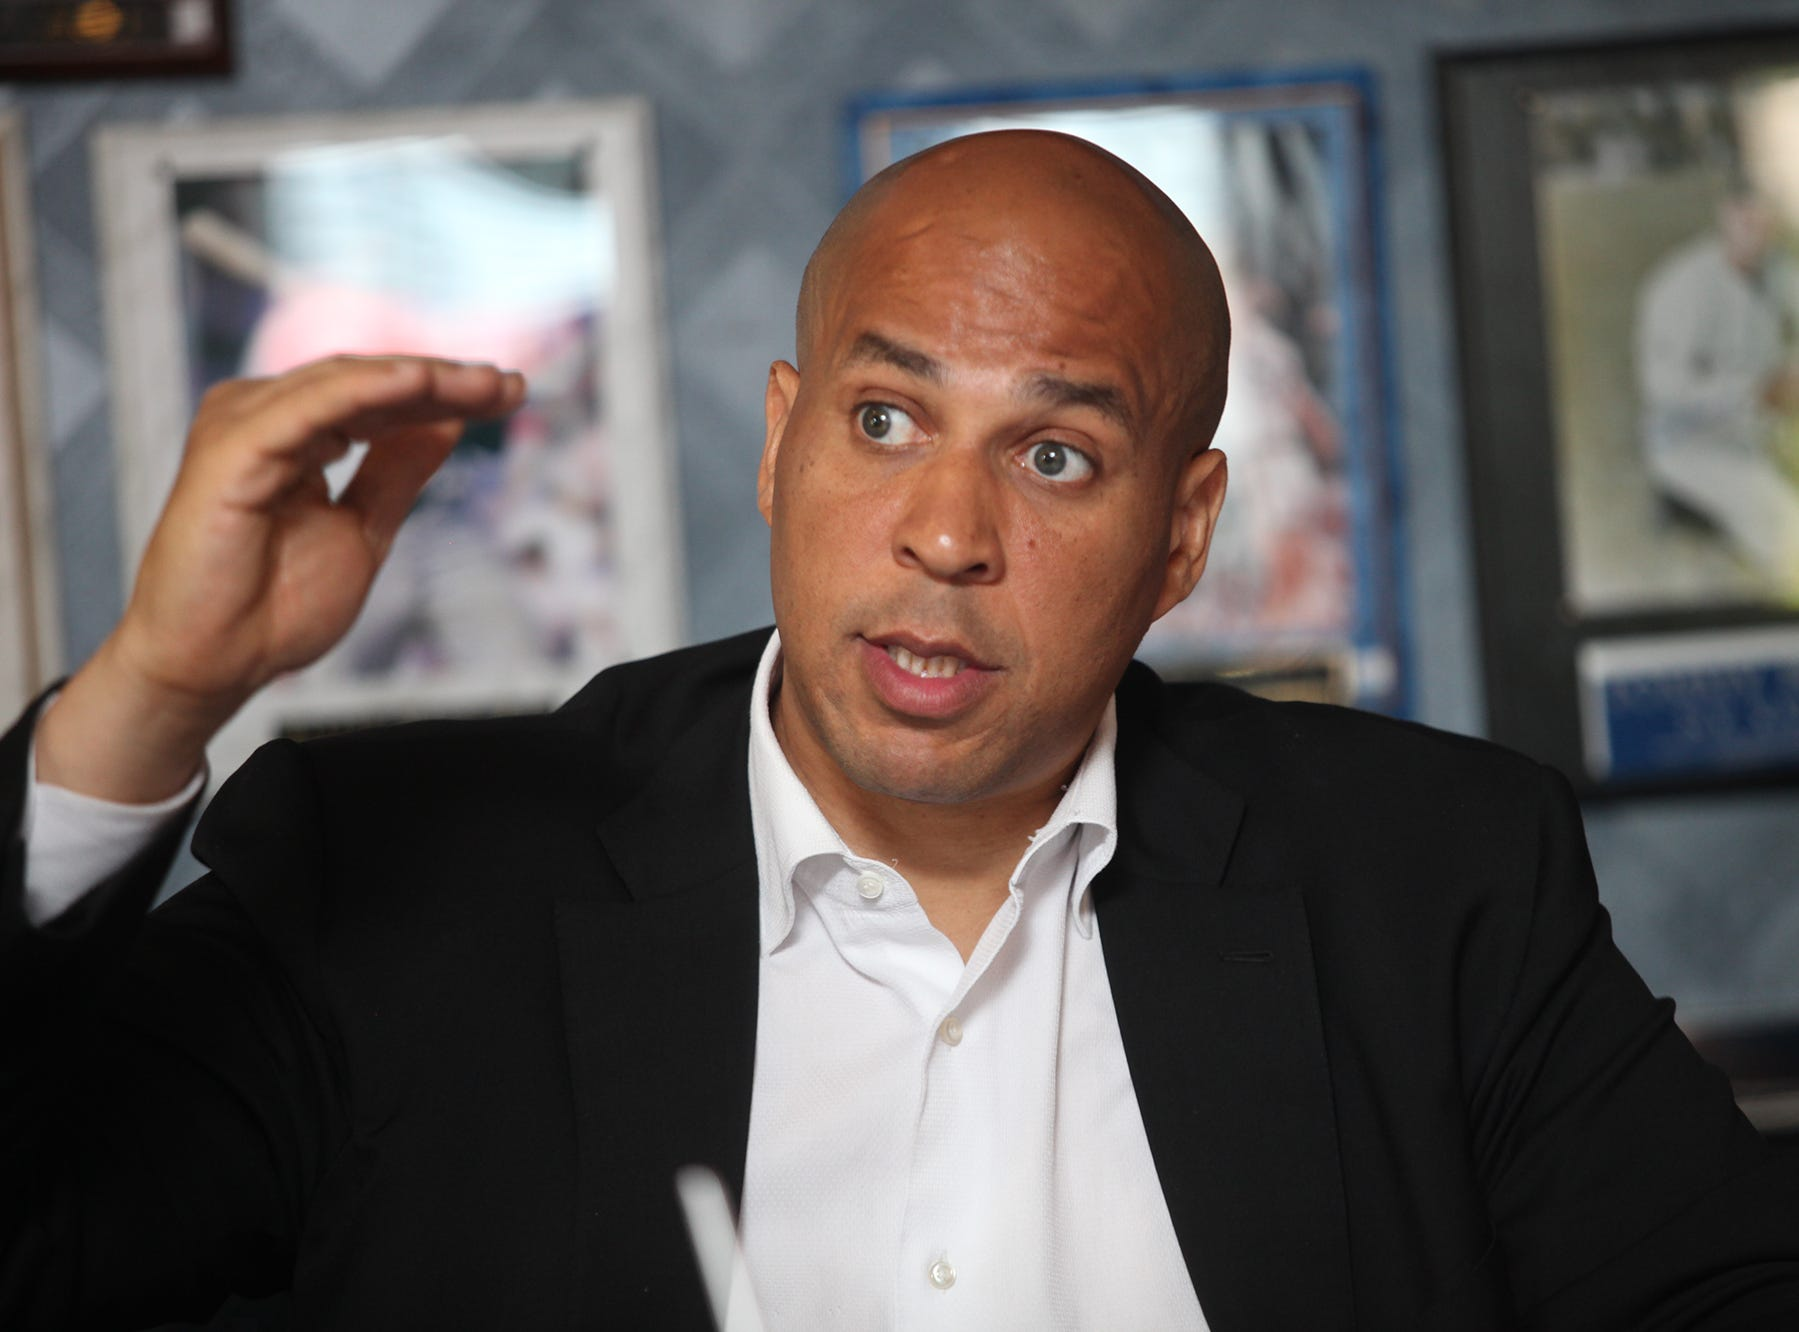 Cory Booker, the Newark mayor and Democratic nominee for U.S. Senate lead a discussion on issues including; economy, health care, first-responders and veterans, at the Arena Diner in Hackensack.  Wednesday, September, 4, 2013. STAFF PHOTO BY; KEVIN R. WEXLER 116013 BERGEN; HACKENSACK 9/4/2013 Cory Booker, the Newark mayor and Democratic nominee for U.S. Senate, leads a round-table discussion on budgetary and economic priorities. Wednesday, September, 4, 2013.